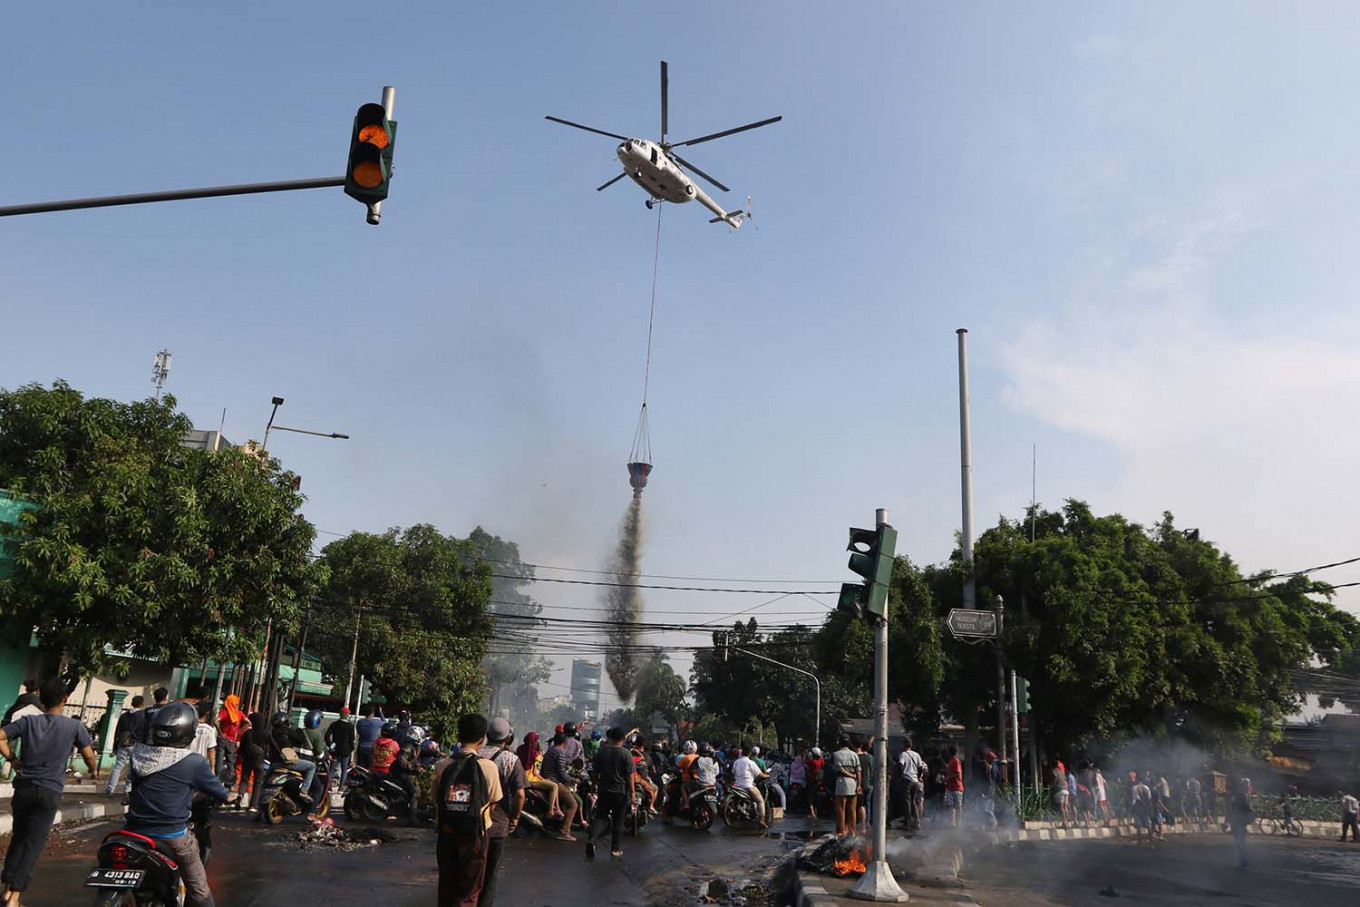 A helicopter water bombs the crowd in Petamburan, Central Jakarta. JP/Dhoni Setiawan